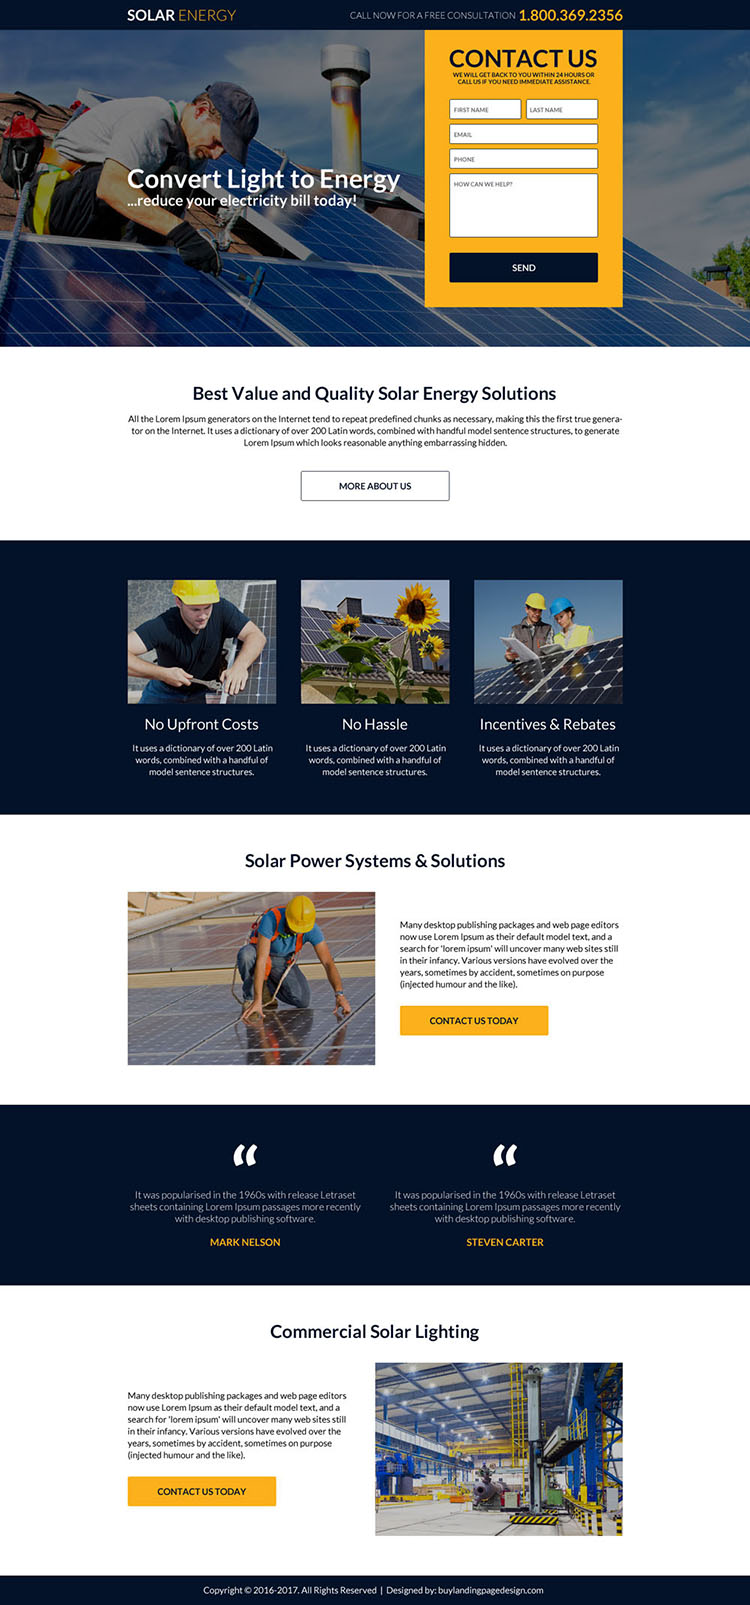 solar energy solutions small lead form landing page design